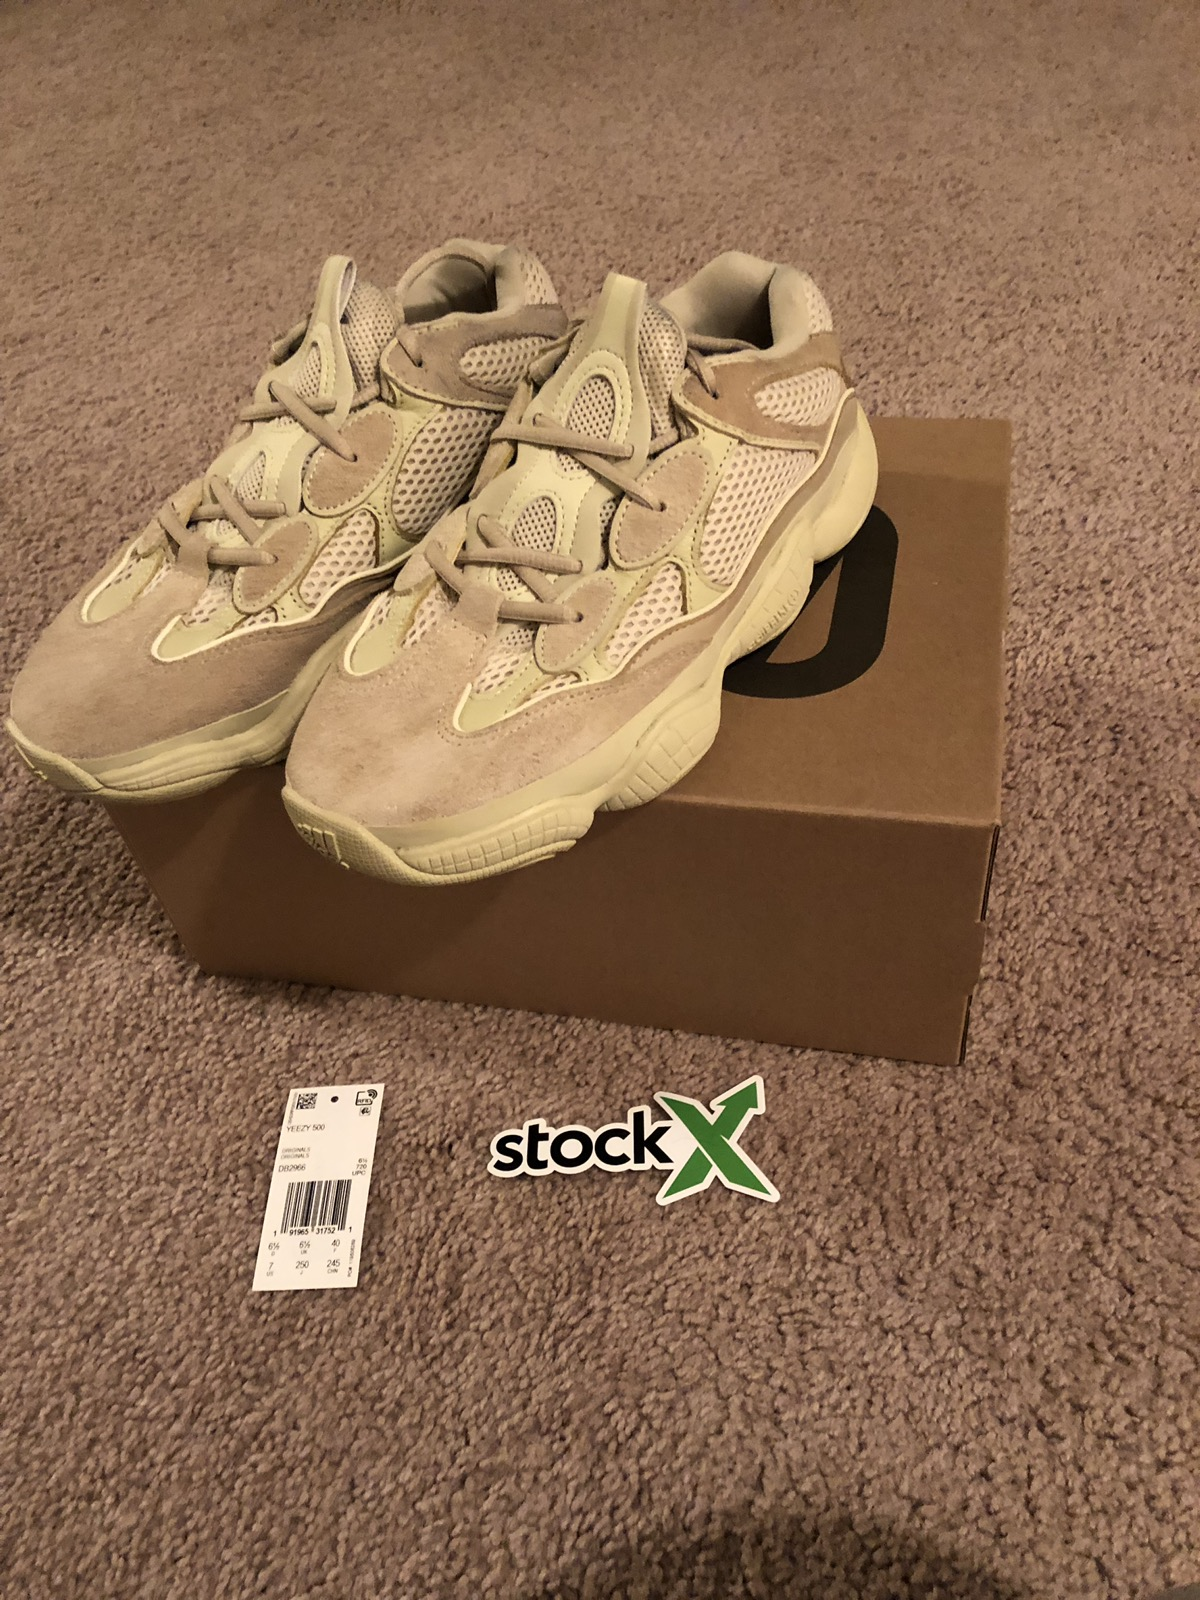 a111f2230 Yeezy Boost Adidas Yeezy 500 Super Moon Yellow Size 7 - Low-Top Sneakers  for Sale - Grailed